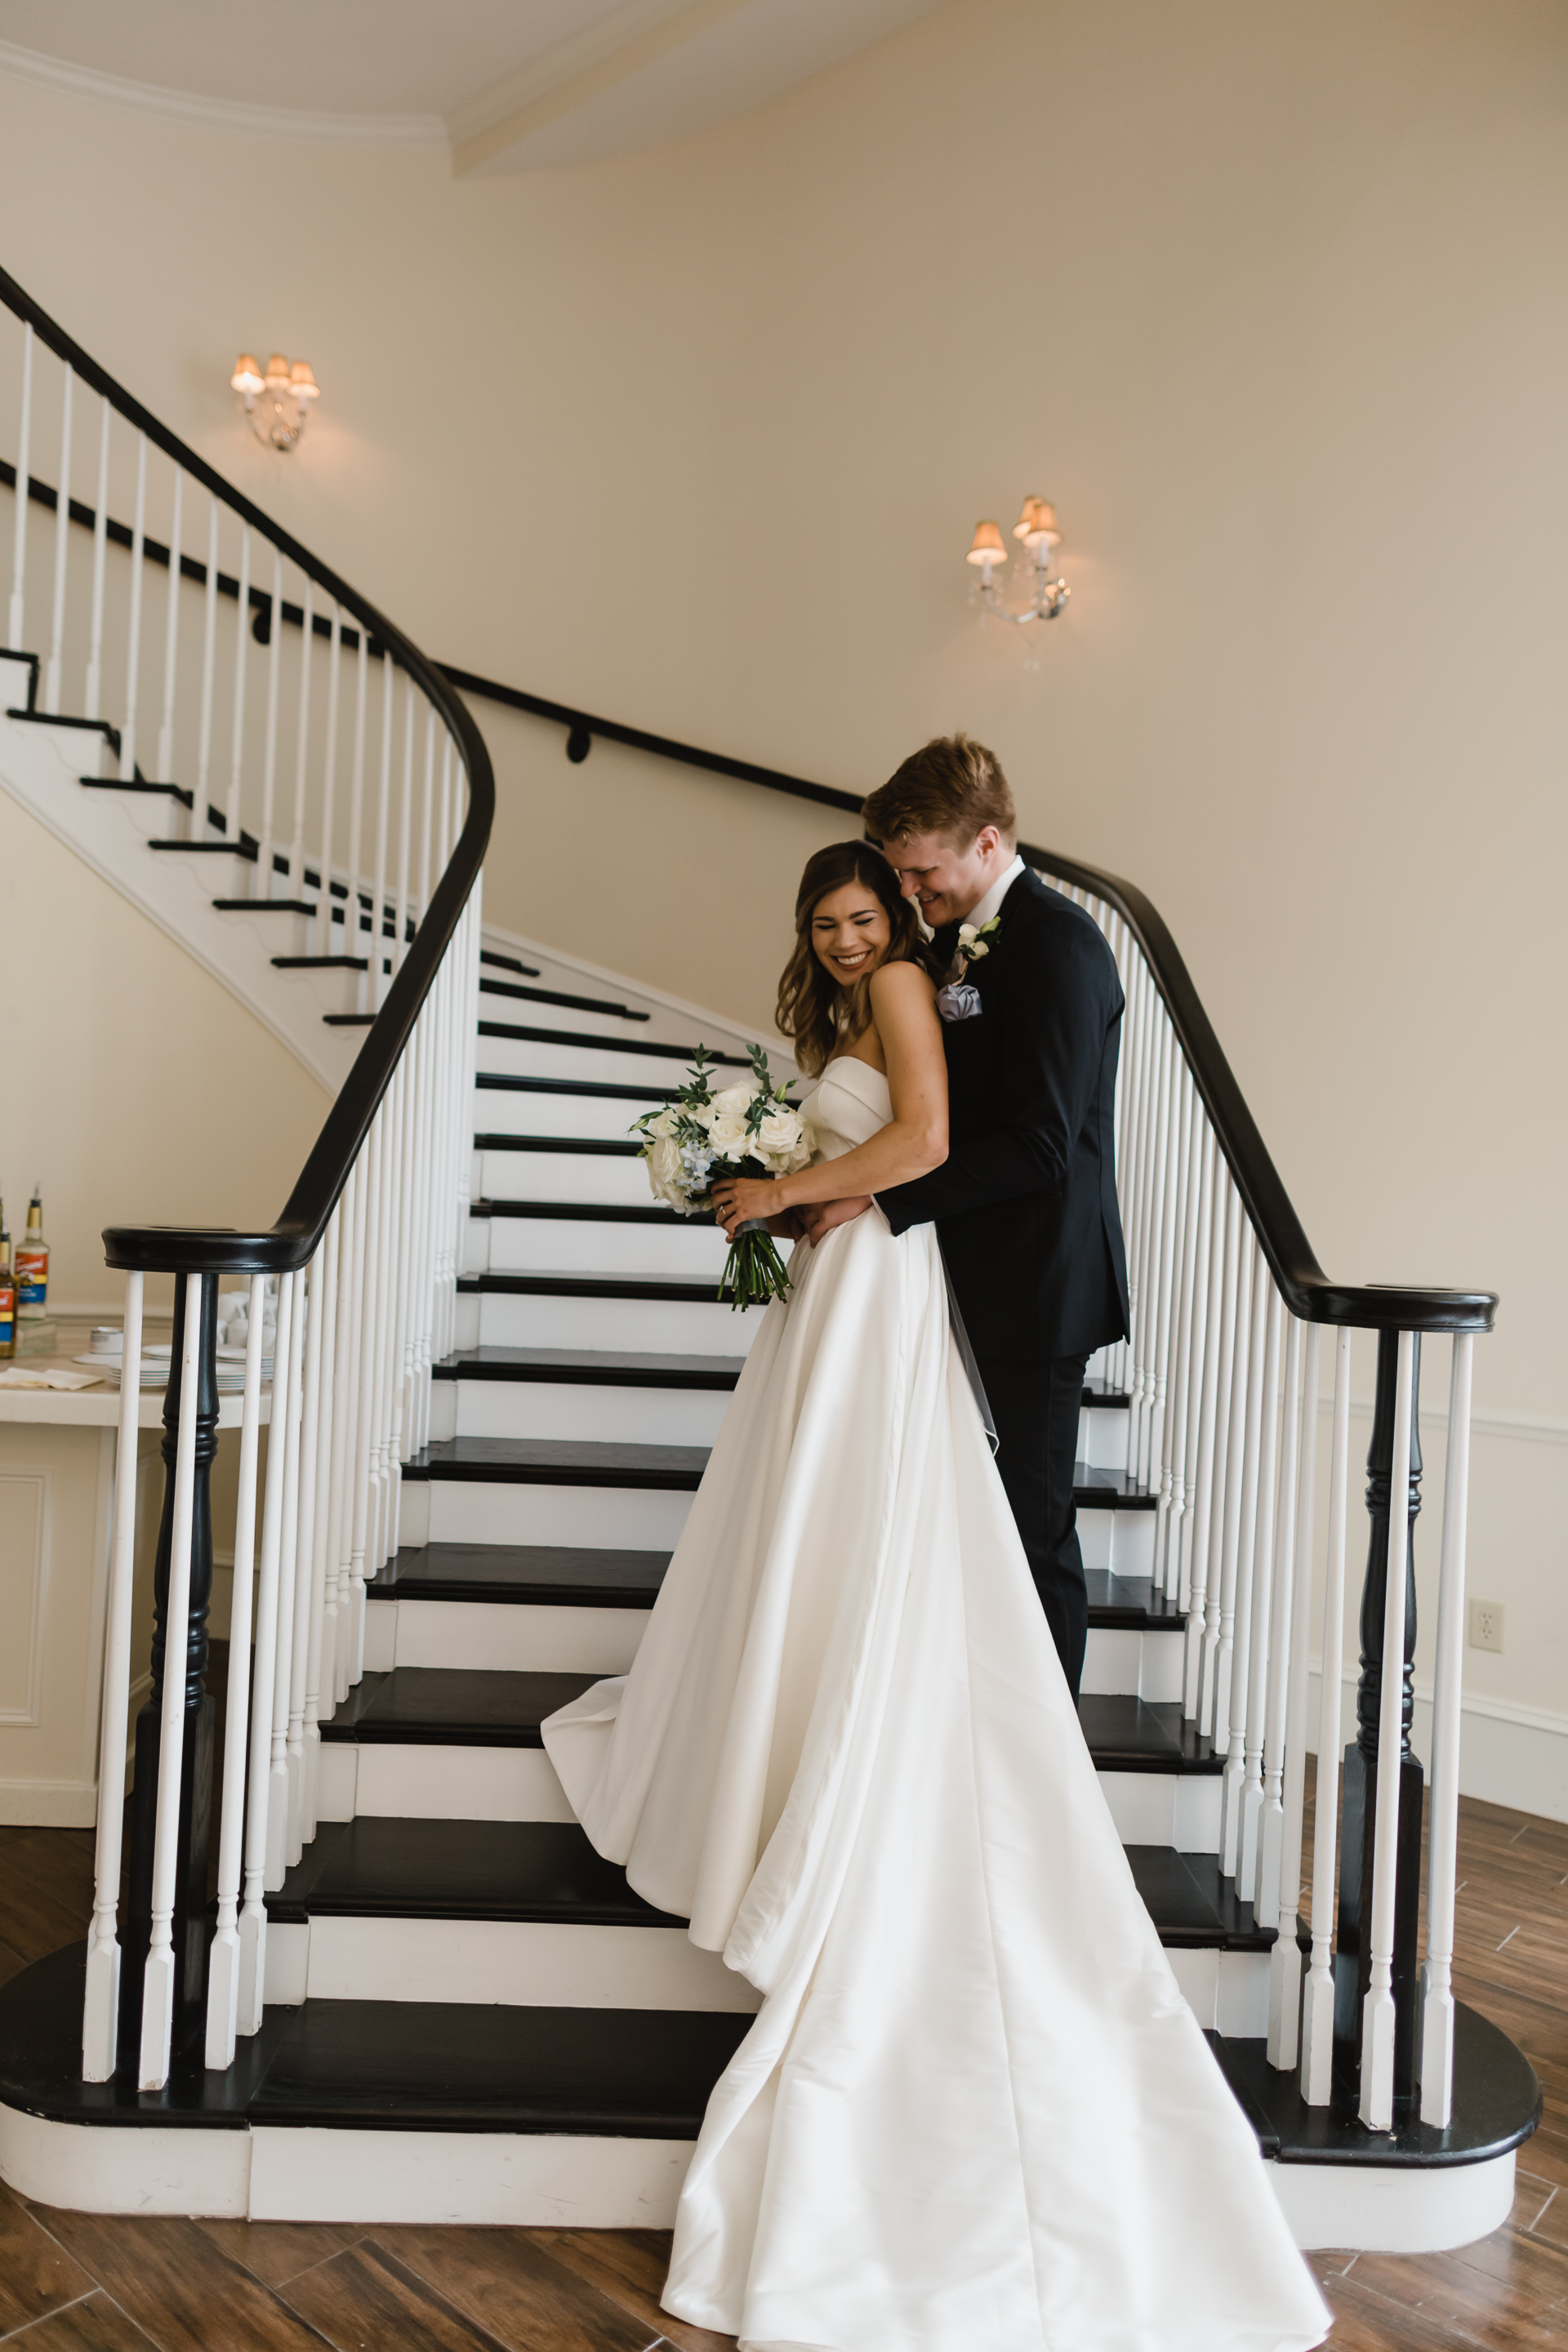 Gianna Keiko Atlanta NYC California Wedding Photographer_sneak peek-20.jpg